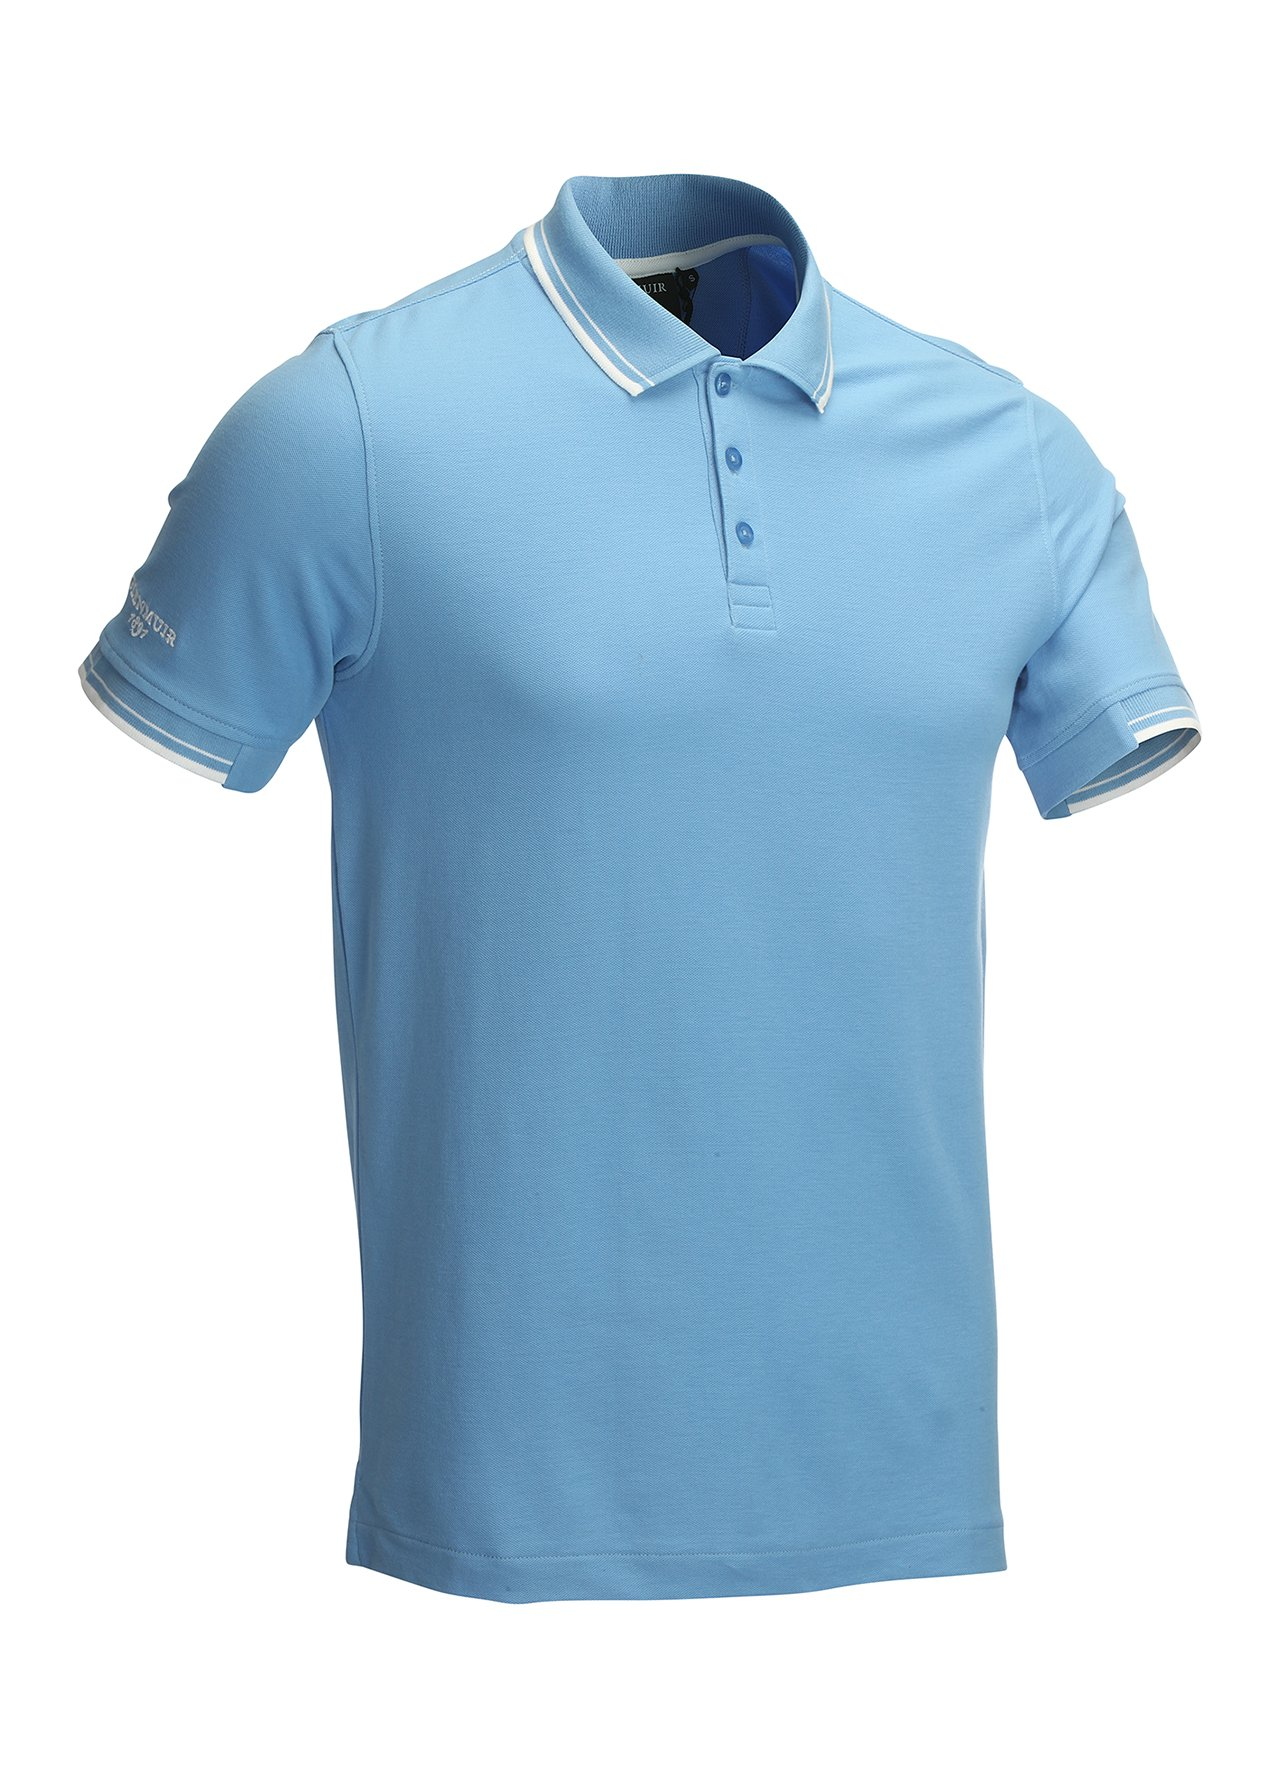 Glenmuir mens tipped golf polo shirt sports top 75 off for Best mens sport shirts